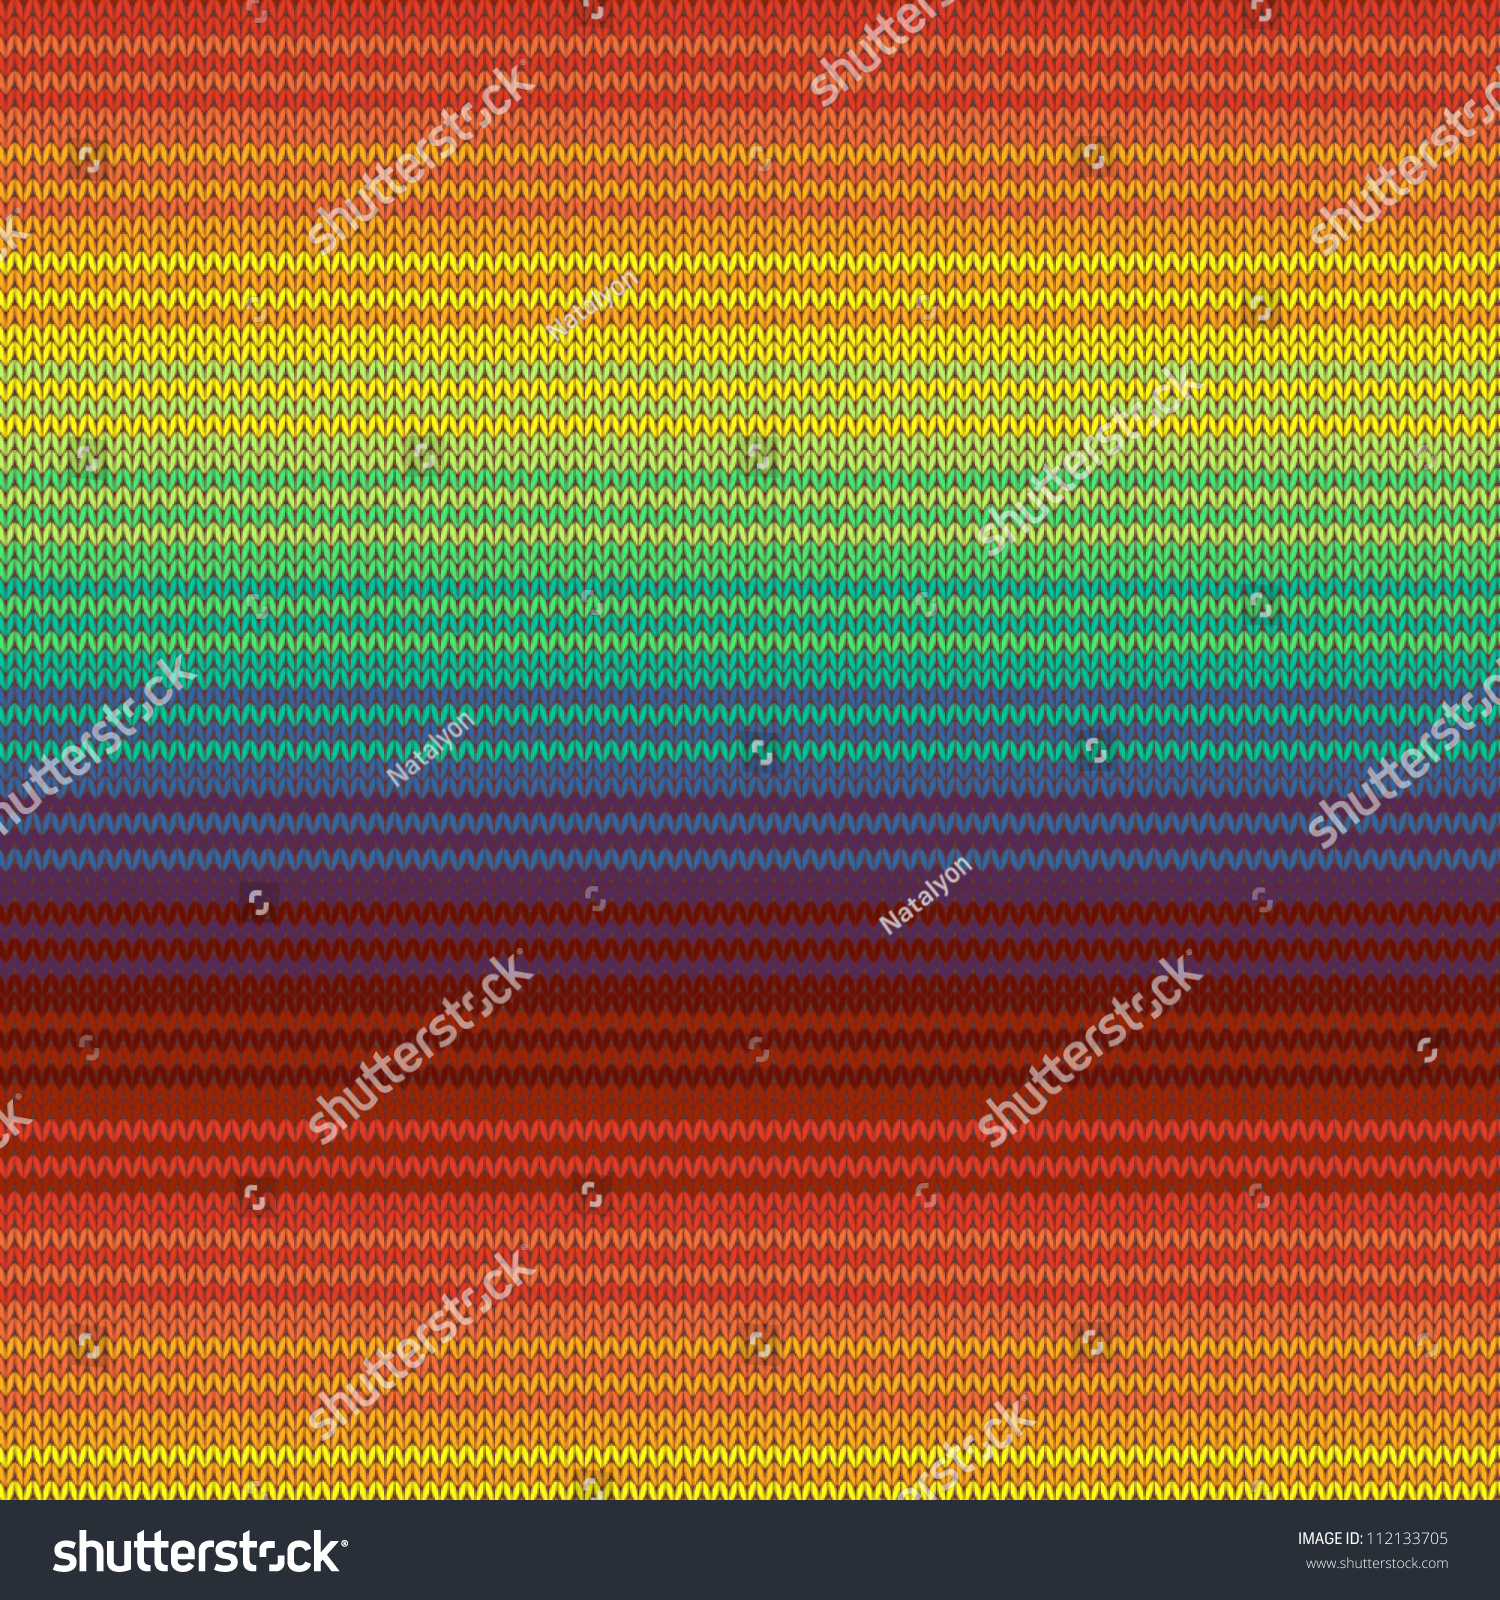 Knitted Mexican Blanket Seamless Pattern, Vector ...